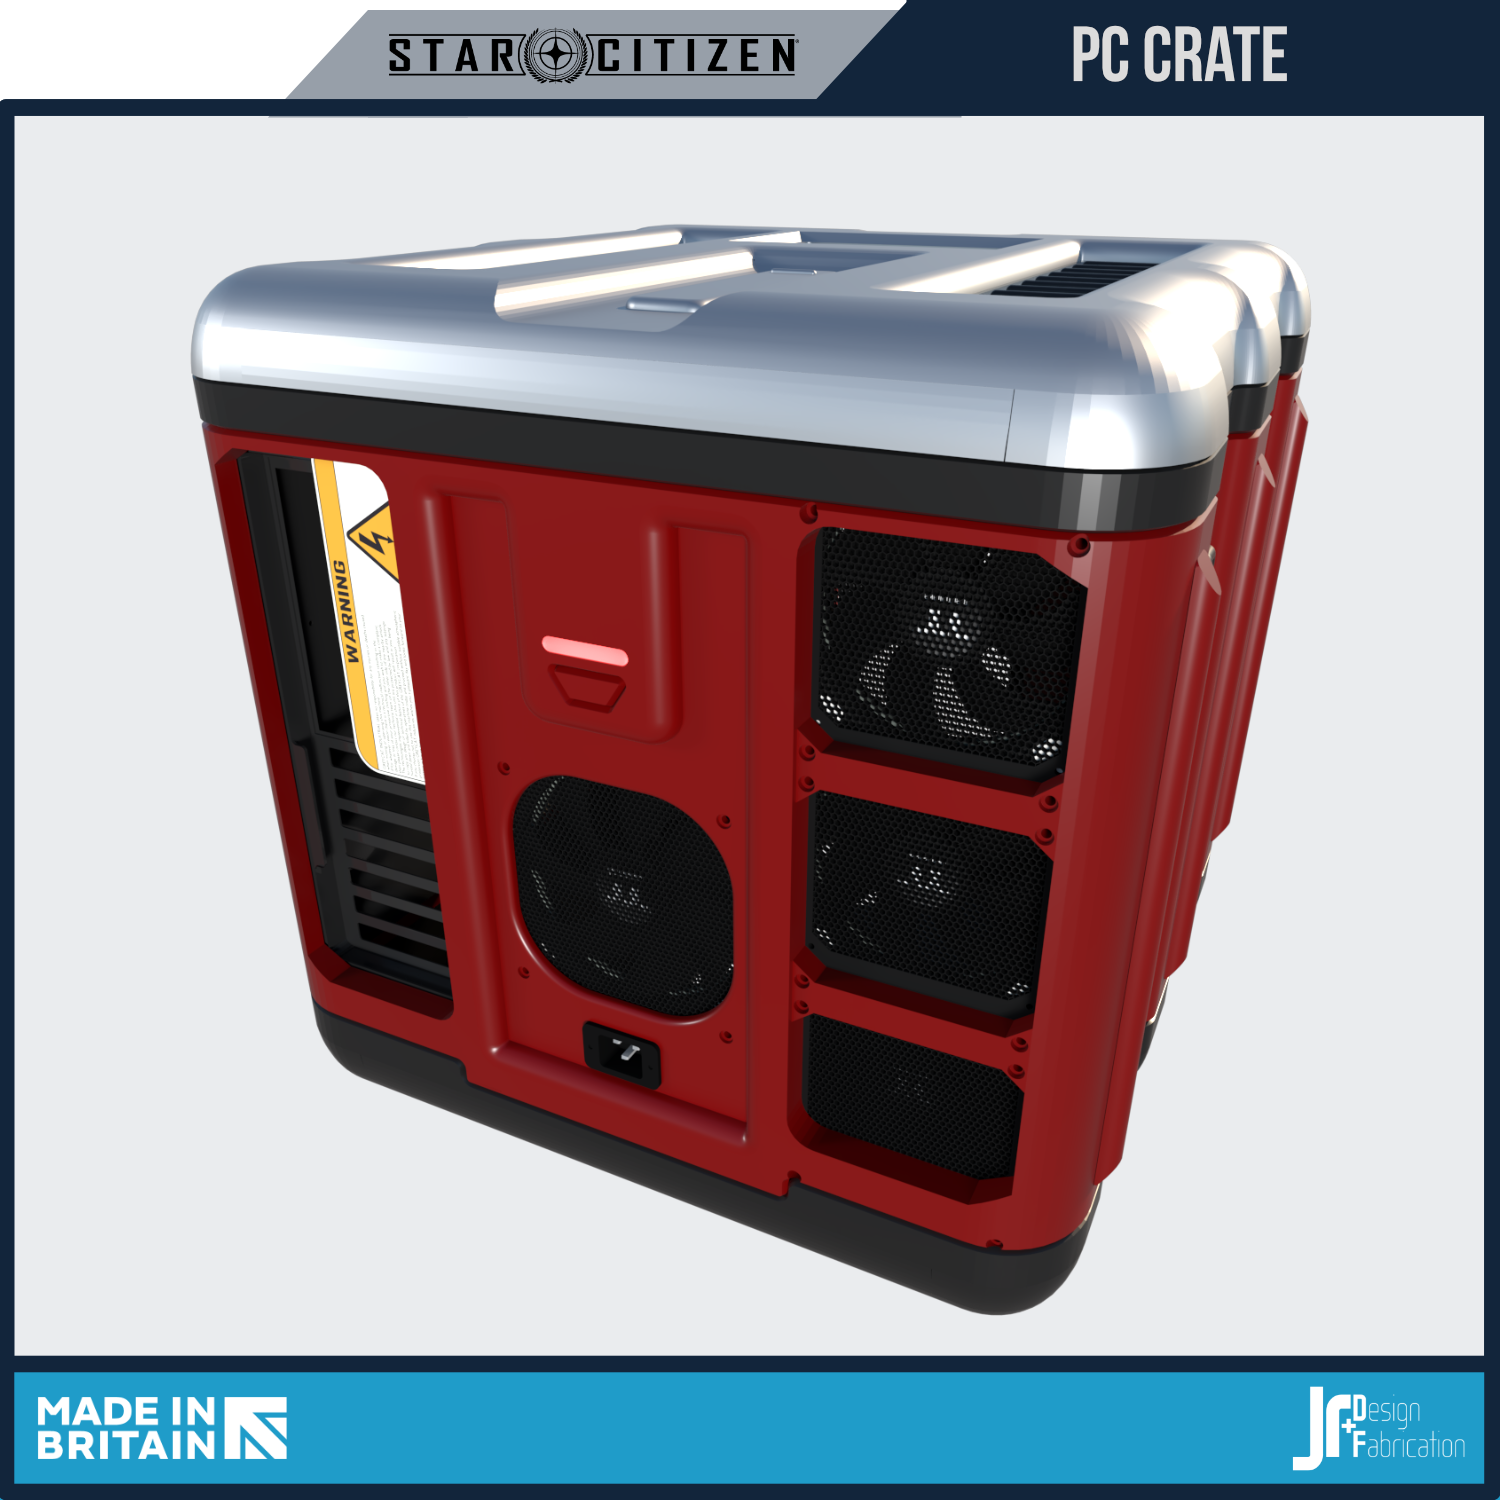 PC Crate image 04.png